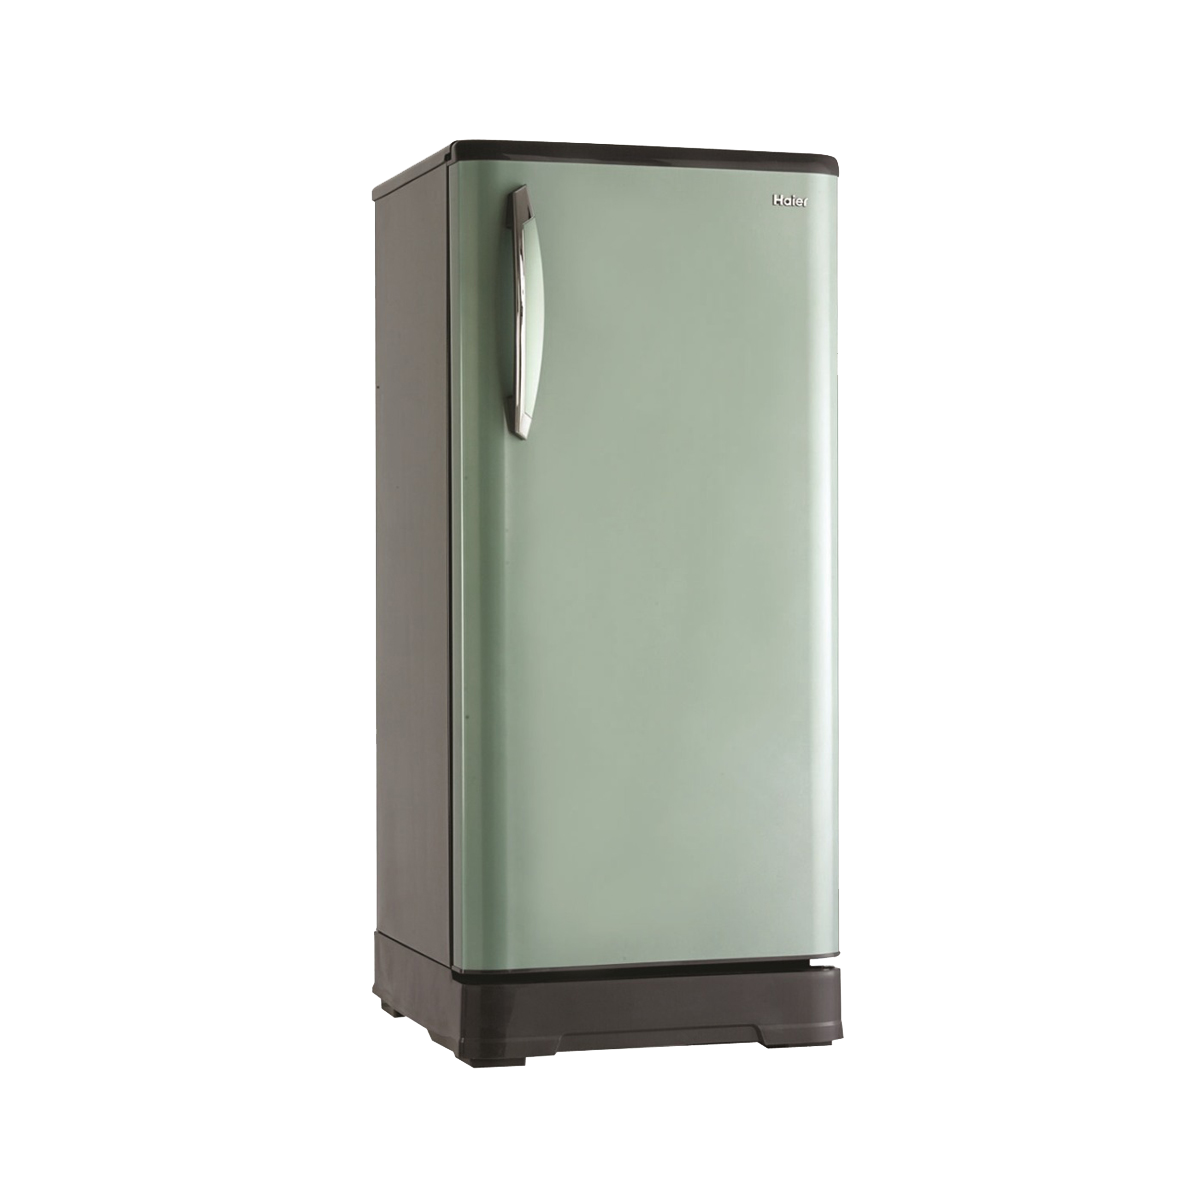 Single Door Refrigerator PNG Photos - PNG Fridge